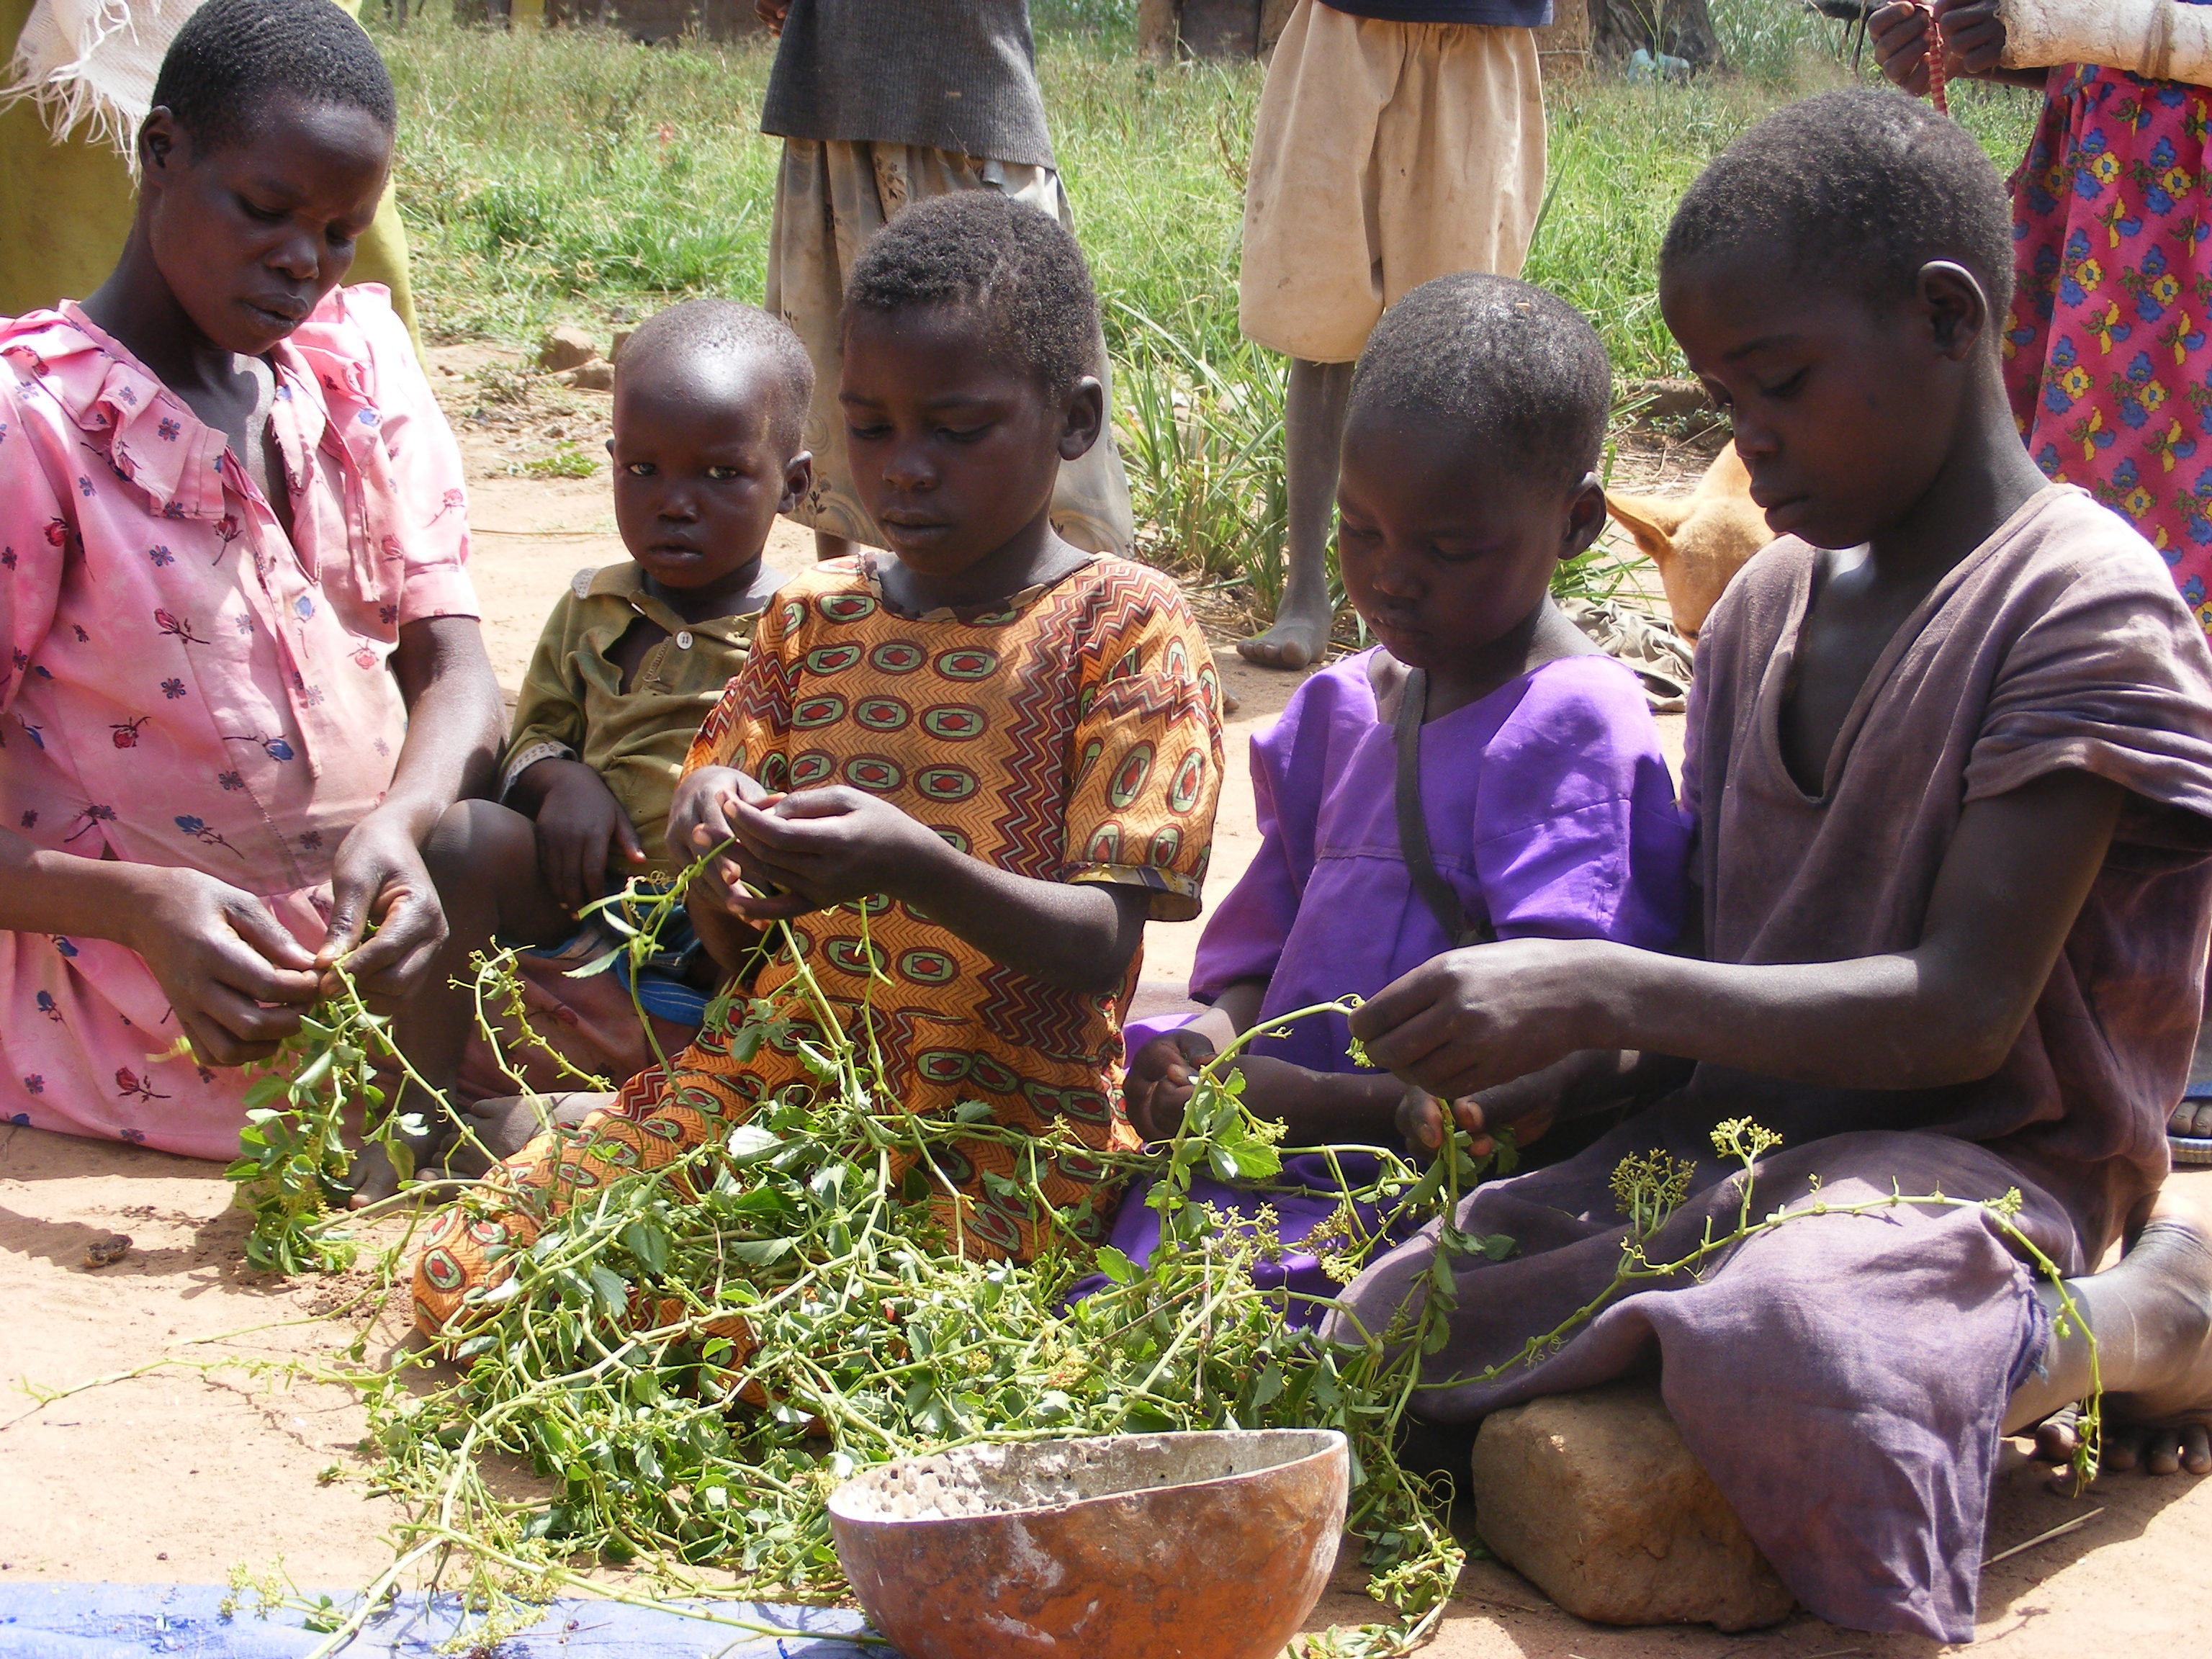 Children in Katakwi collect some vegitables. The area has been hit by famine. John Njoroge Photo